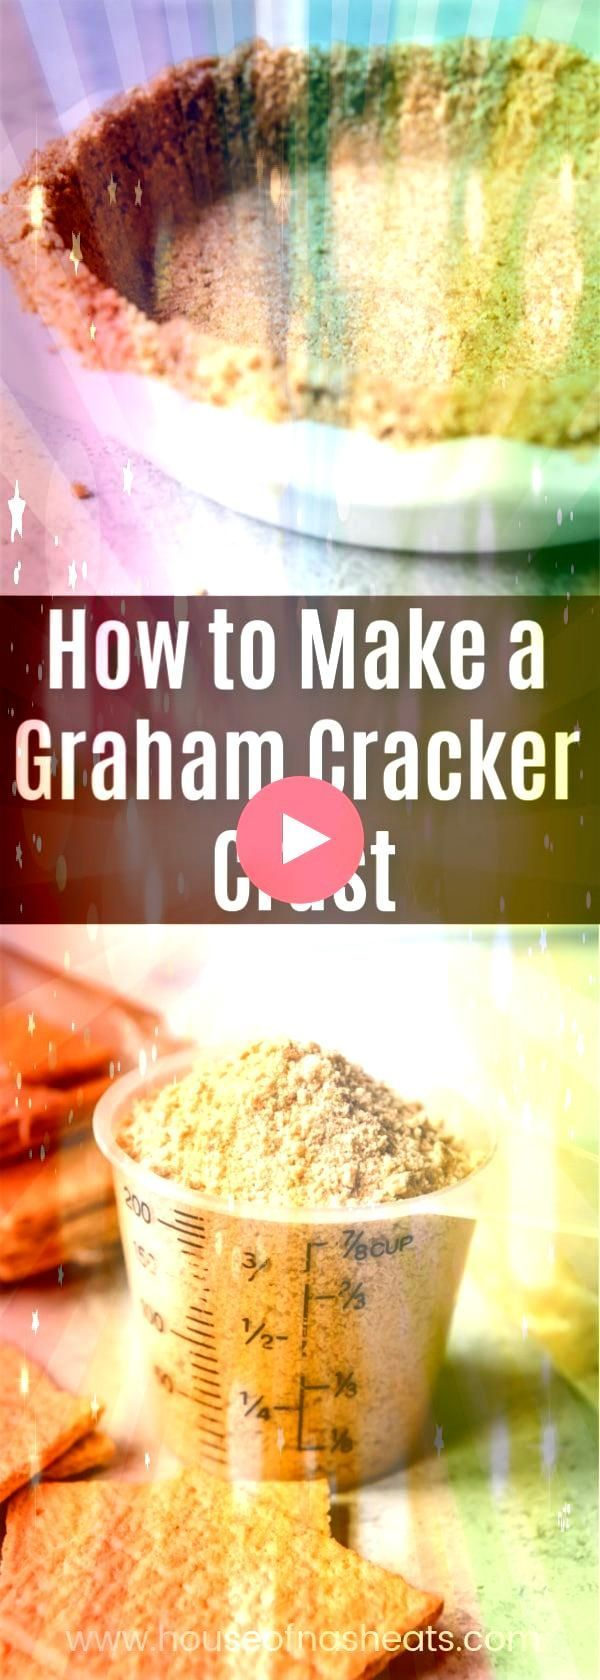 #homemadegrahamcrackercrust #grahamcracker #storebought #cheesecake #homemade #learning #cracker #crusts #butter #recipe #graham #tastes #better #simple #doesntHow to Make a Graham Cracker Crust Never buy a store-bought graham cracker pie crust again by learning how to make a Graham Cracker Crust at home.  It's super easy, tastes better, and doesn't fall apart like the store-bought graham cracker crusts.How to Make a Graham Cracker Crust Never buy a store-bought graham cracker pie crust ... #ho #homemadegrahamcrackercrust